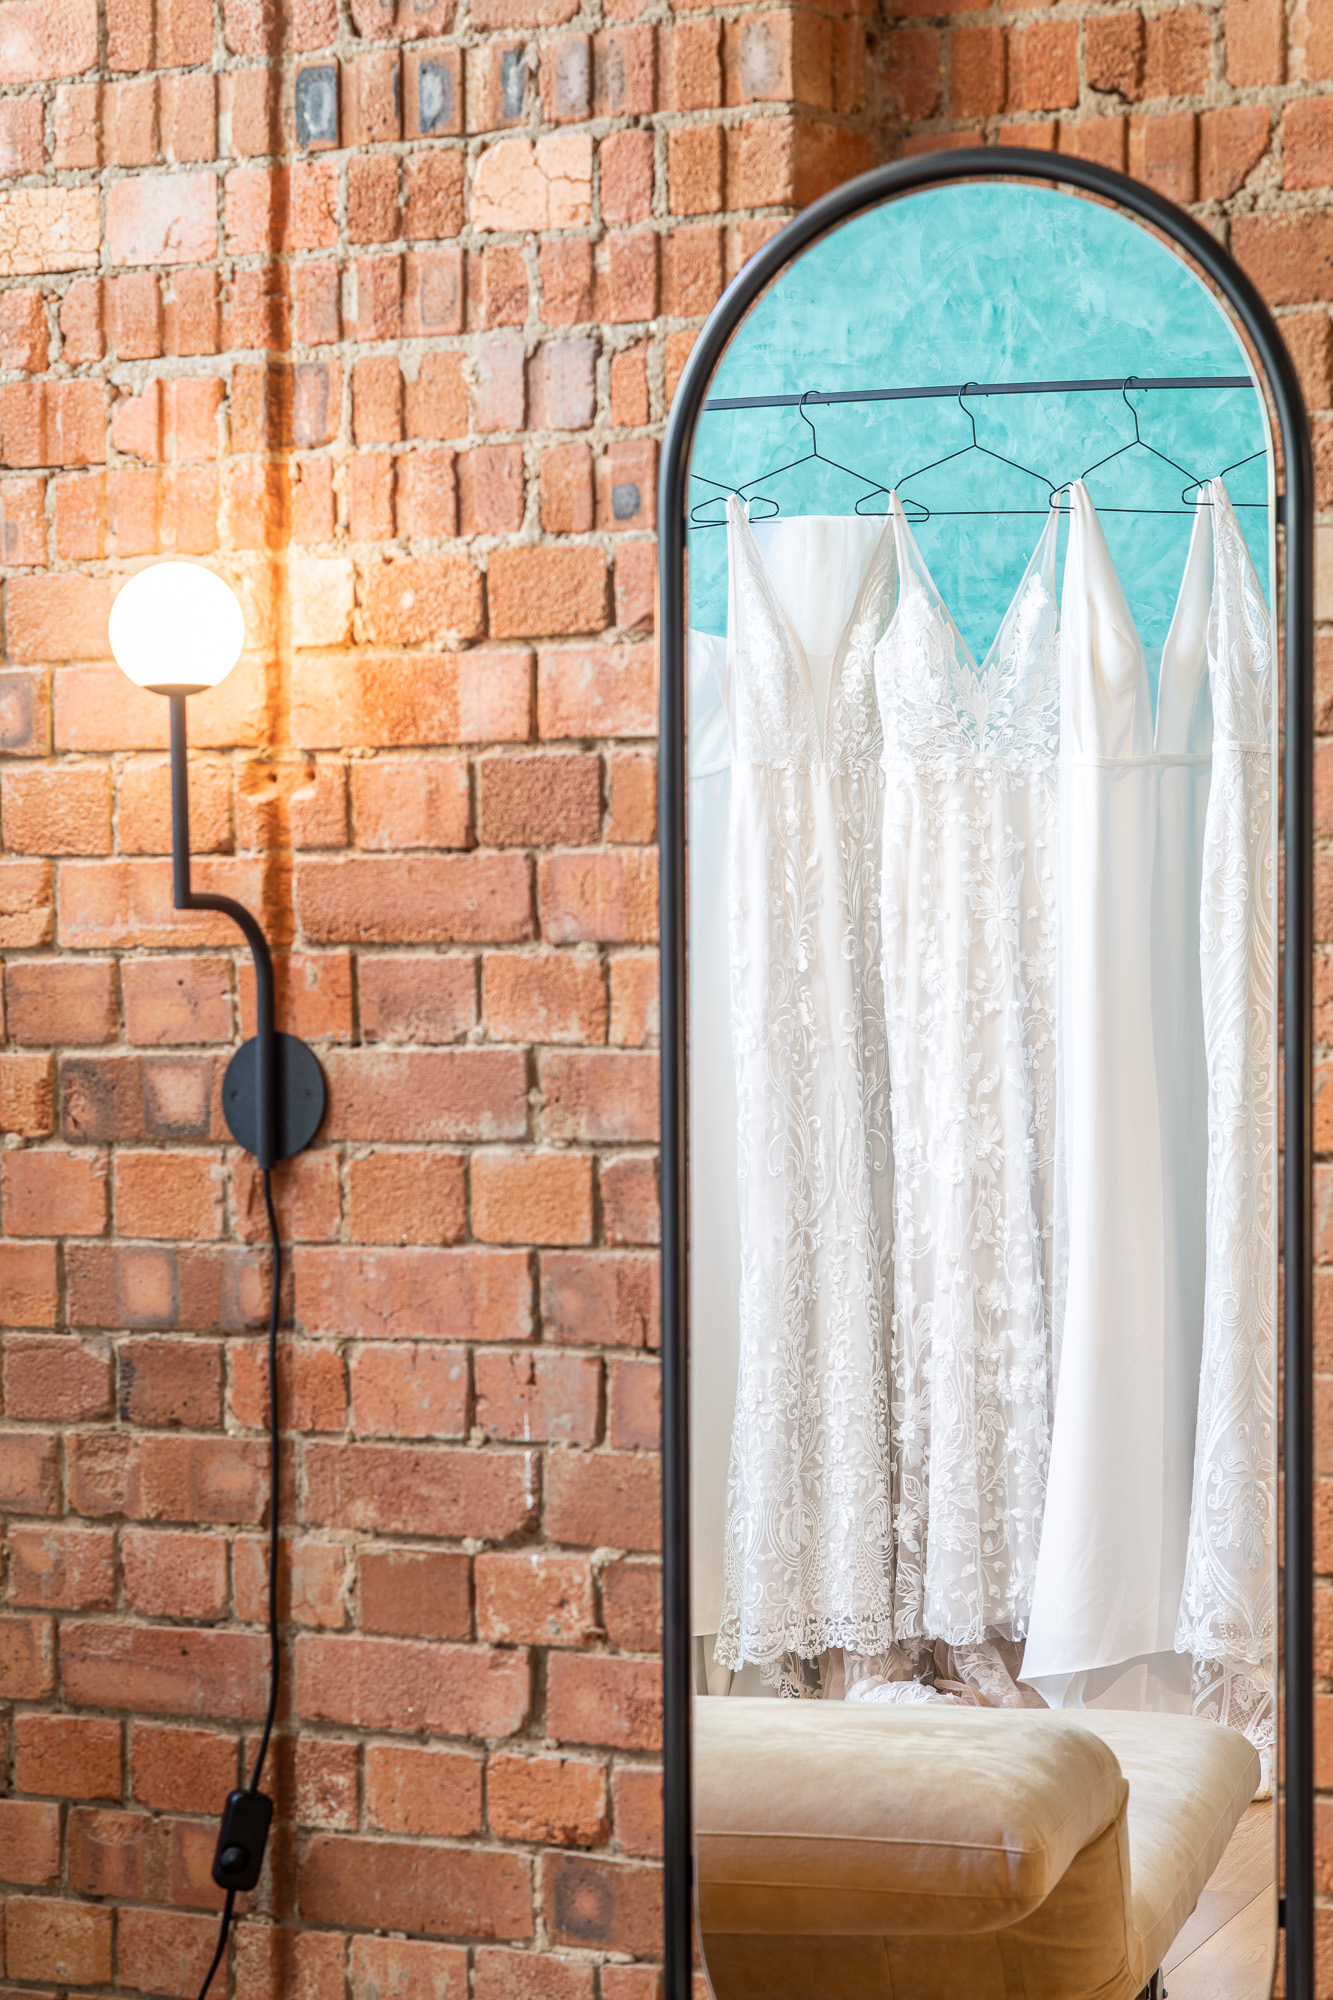 jonathan bond, interior photographer, bridal dresses mirror reflection, made with love, london